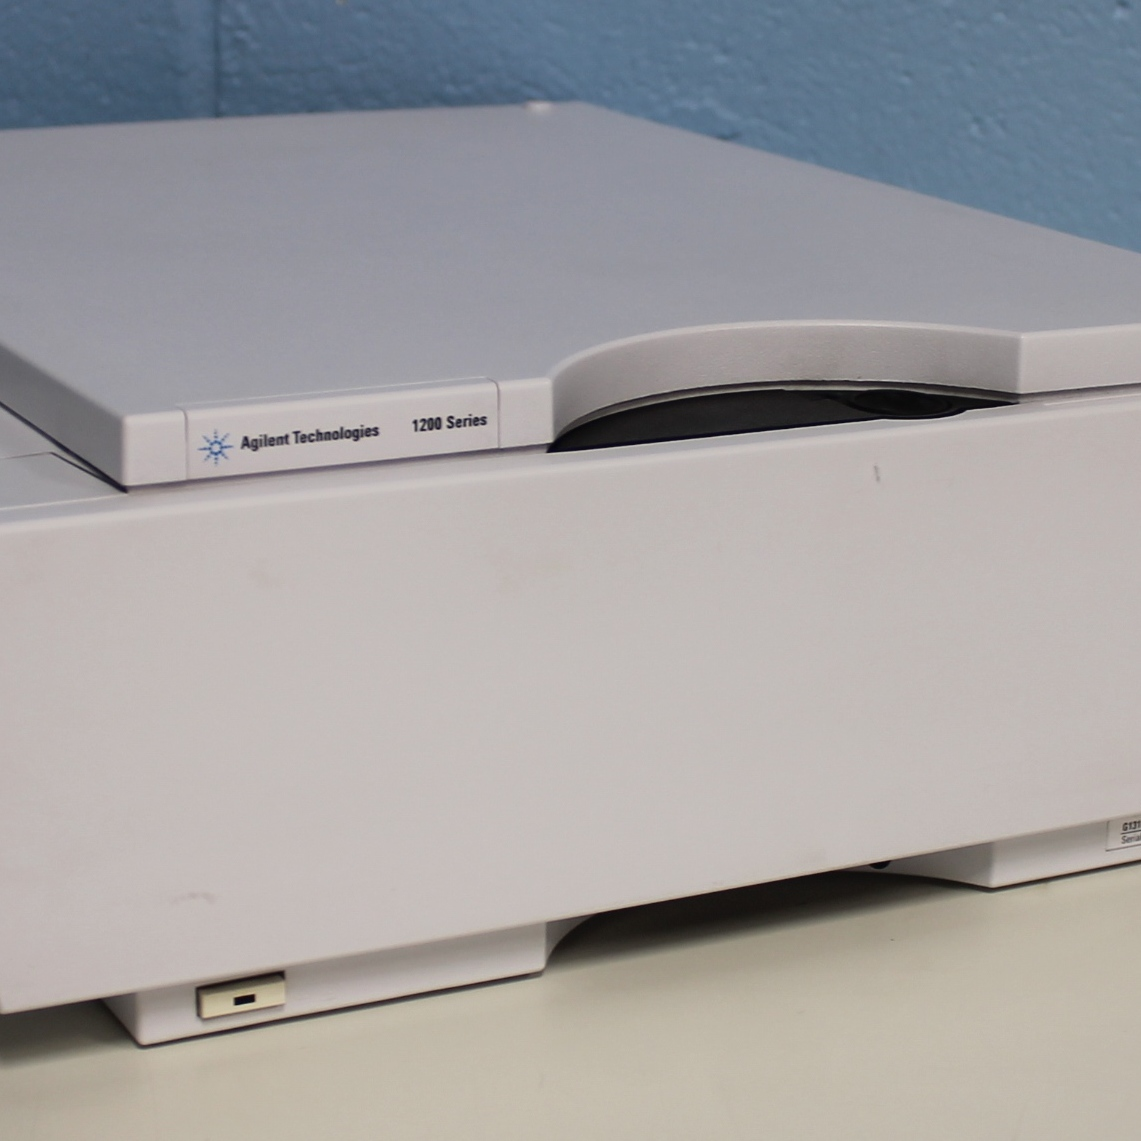 Agilent Technologies 1200 Series G1316B TCC SL Thermostatted Column Compartment Image